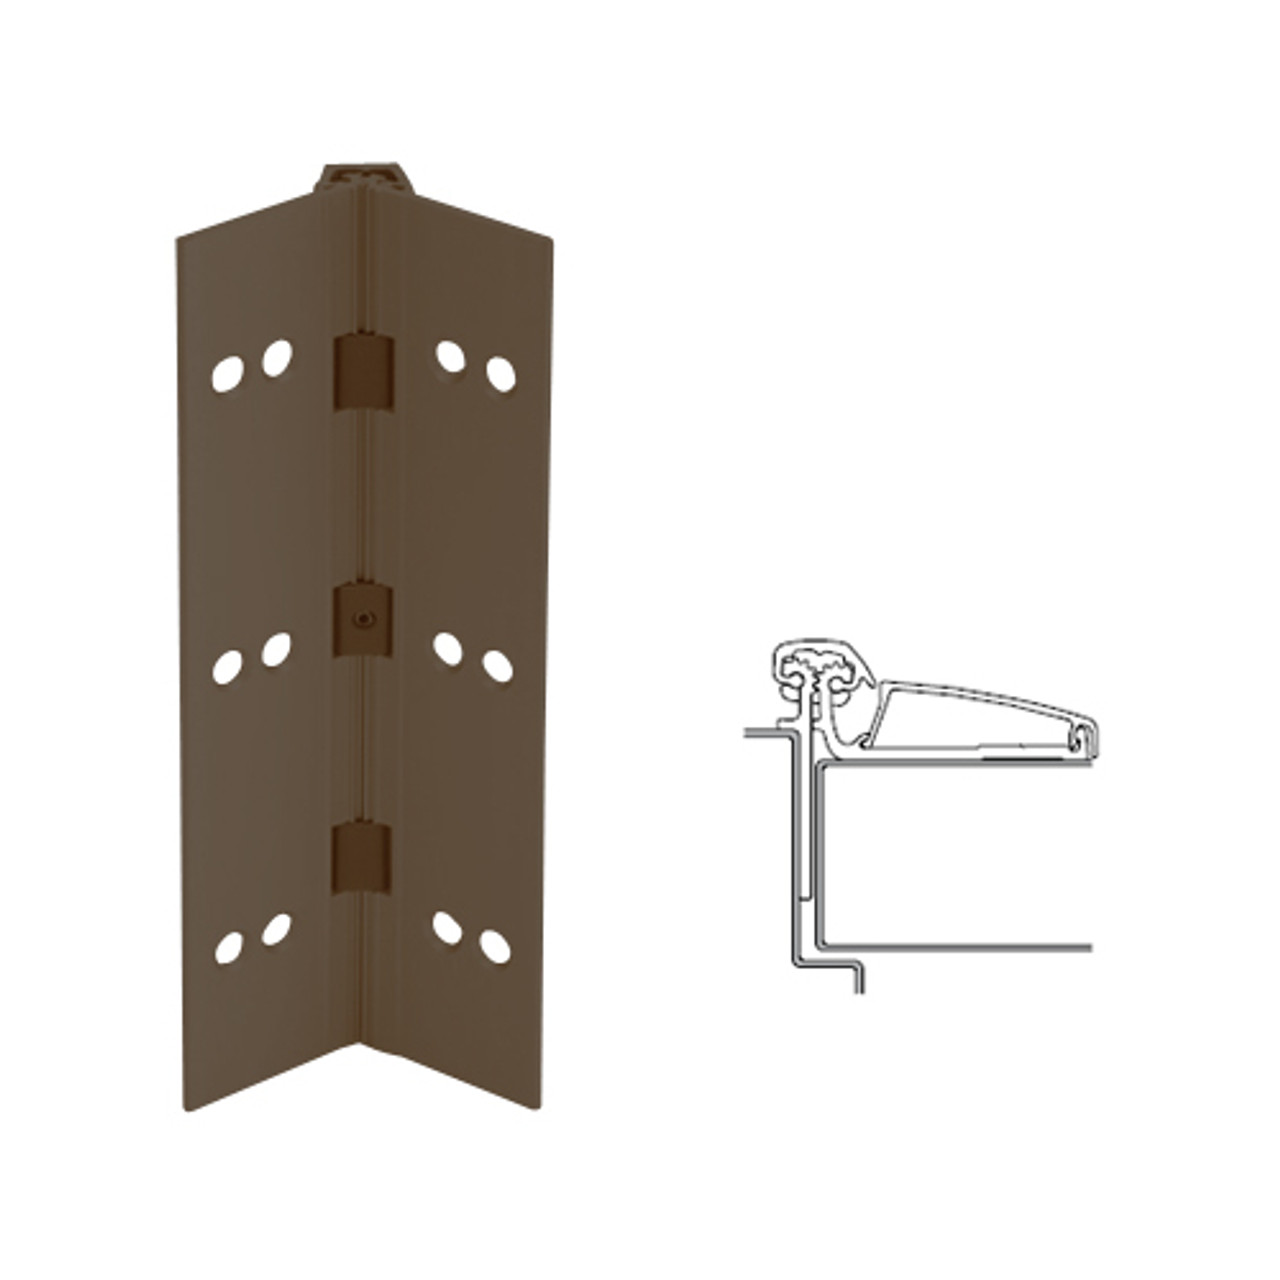 045XY-313AN-95-TF IVES Adjustable Half Surface Continuous Geared Hinges with Thread Forming Screws in Dark Bronze Anodized